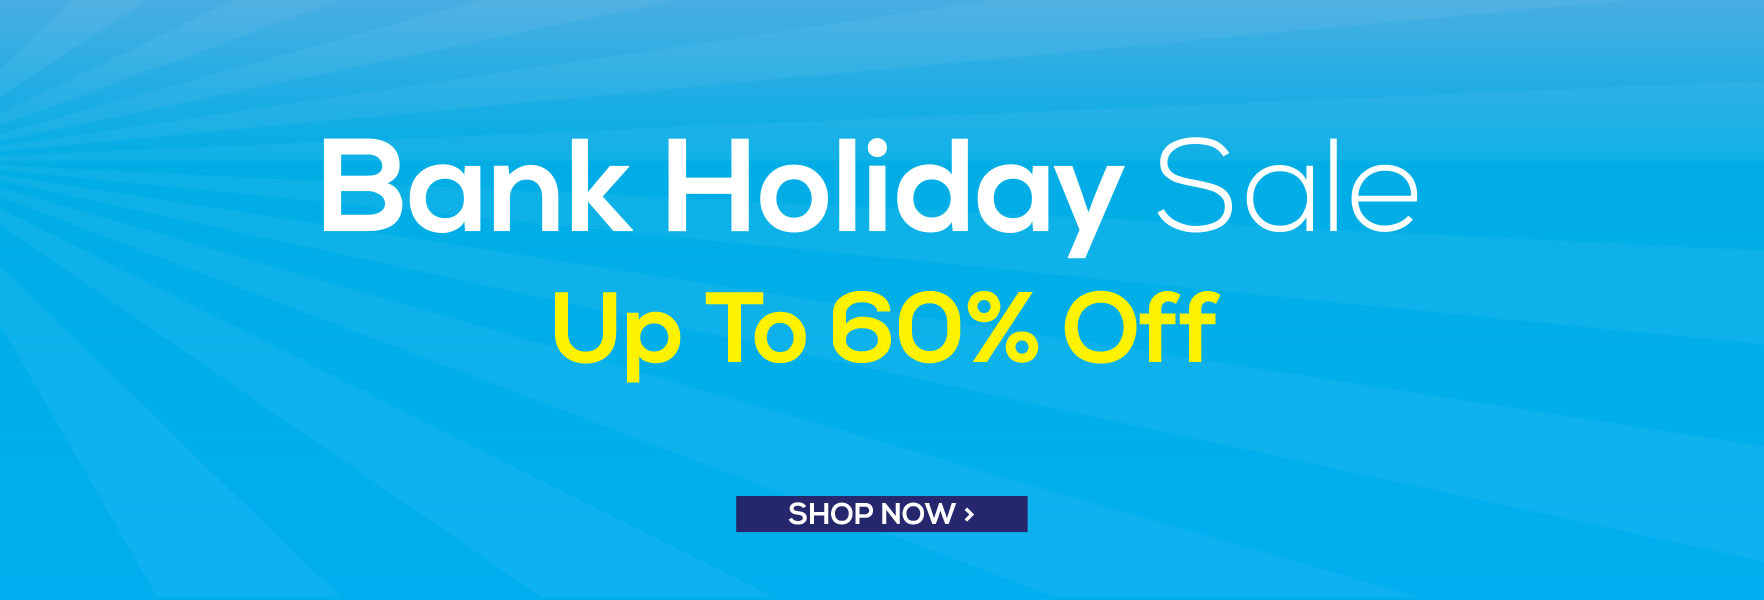 Value Bank Holiday Sale Up To 60%